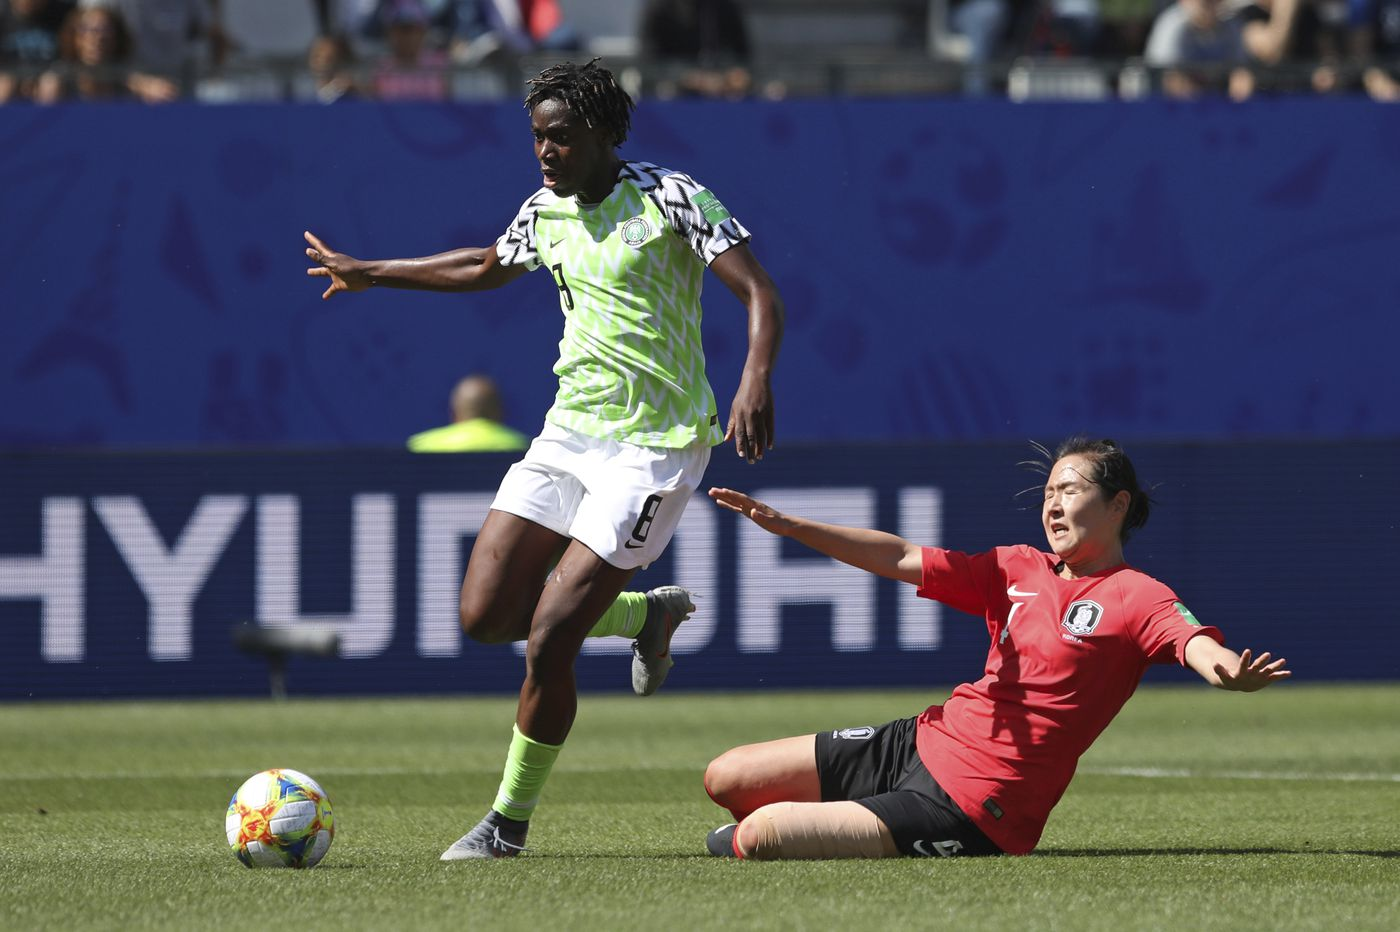 Nigeria beats South Korea, 2-0, for first Women's World Cup win since 2011